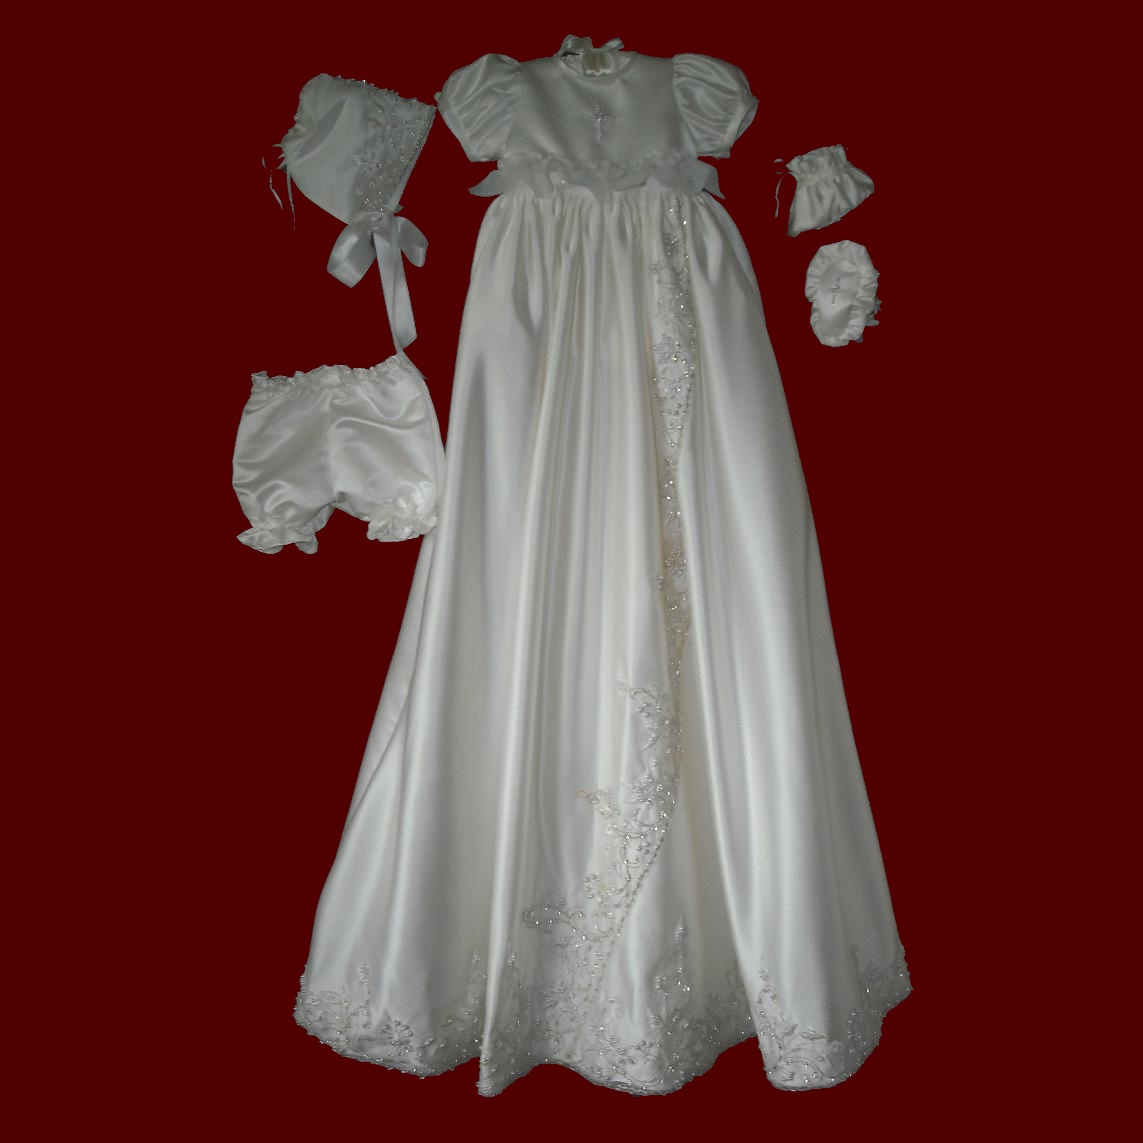 Satin & Beaded Trim Girls Detachable Christening Gown, Panties & Bonnet